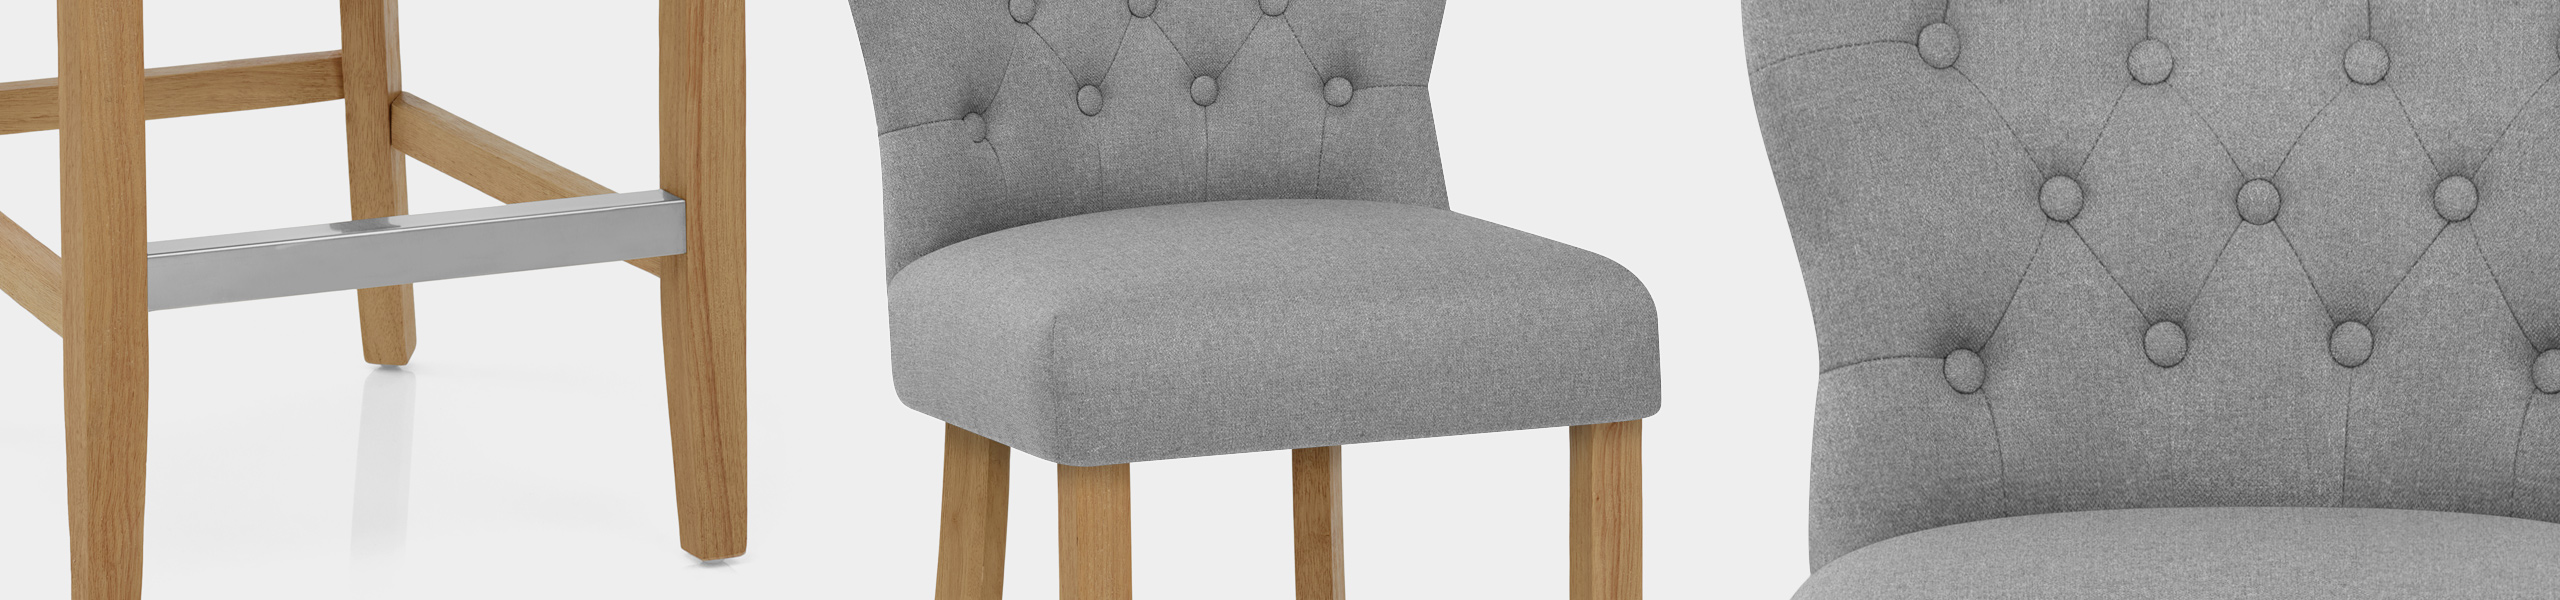 Windsor Bar Stool Grey Fabric Video Banner